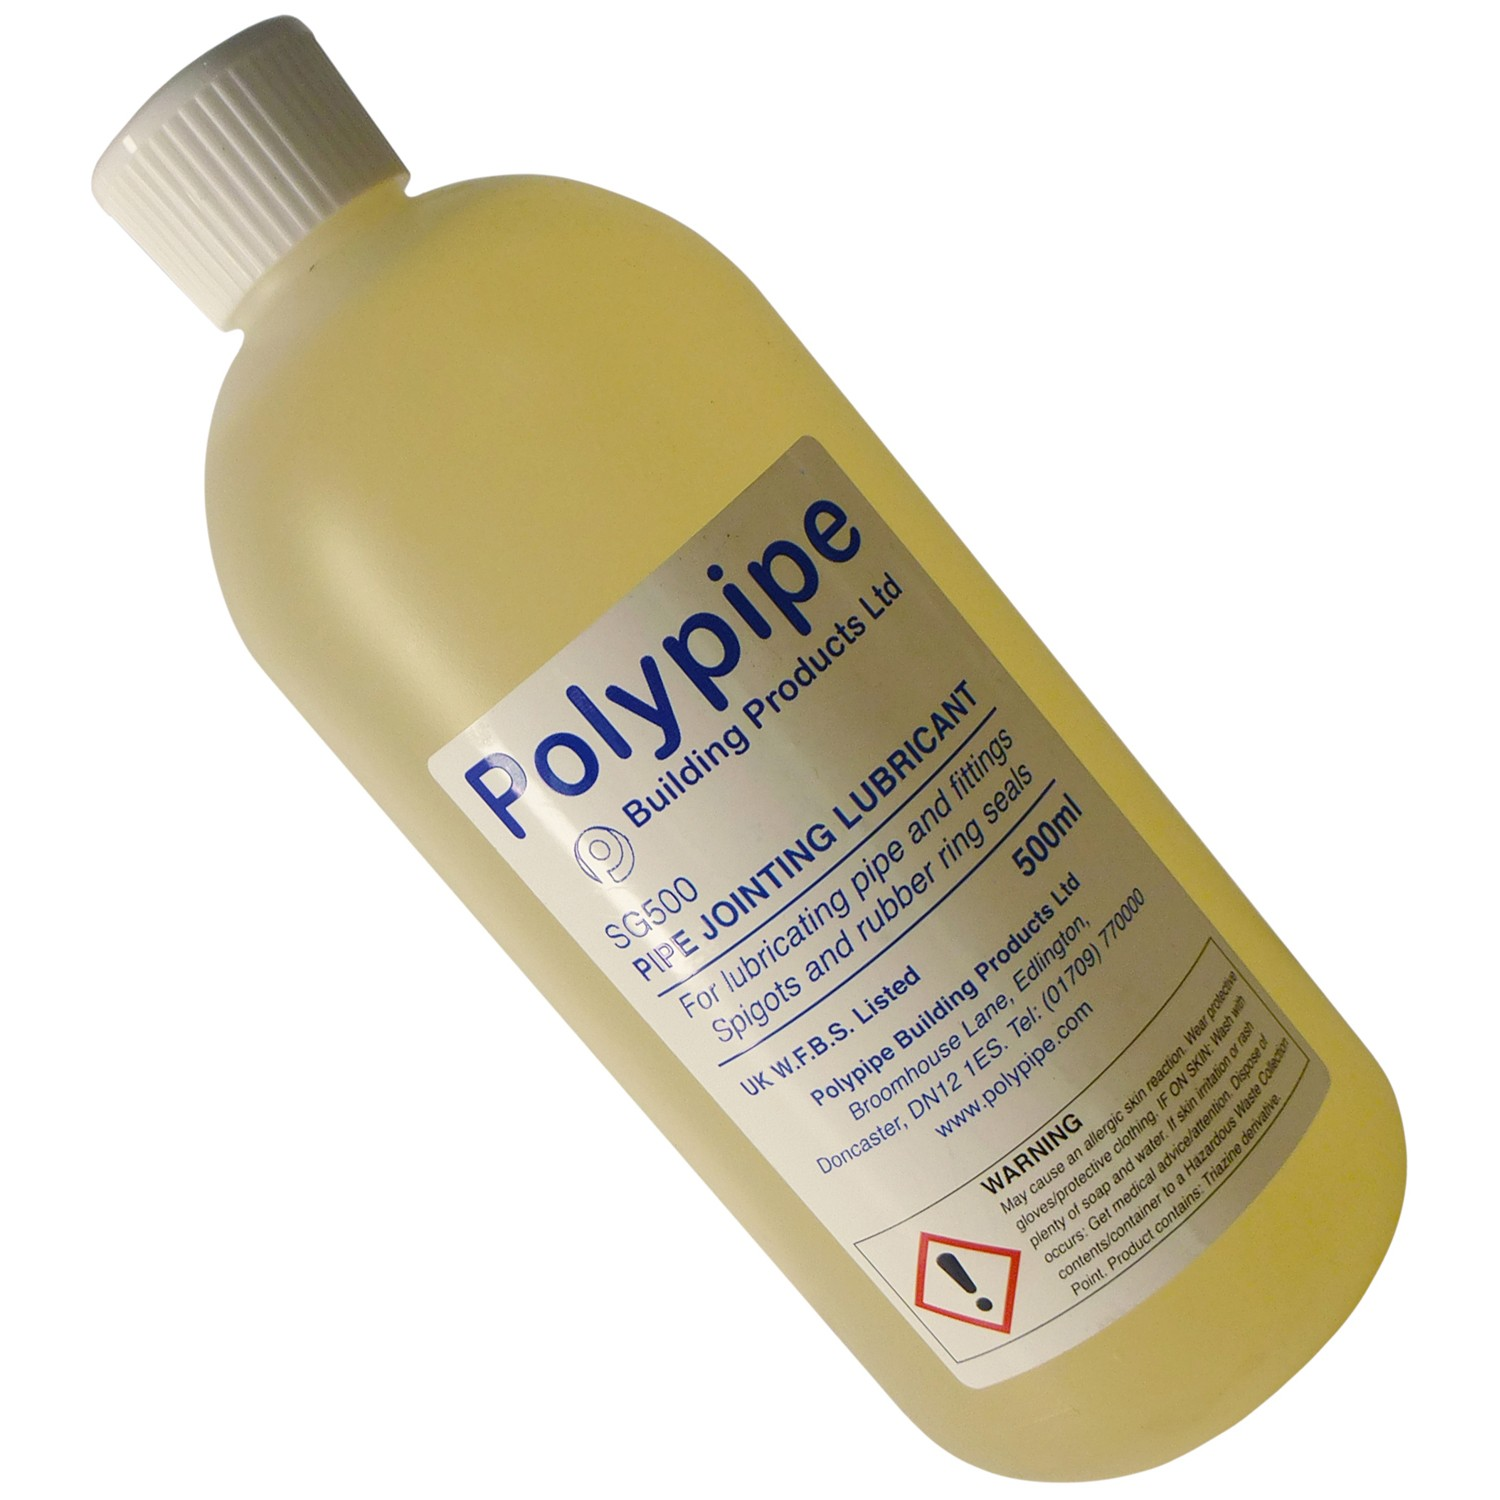 Polypipe Pipe Joint Lubricant Bottle - Clear, 500ml